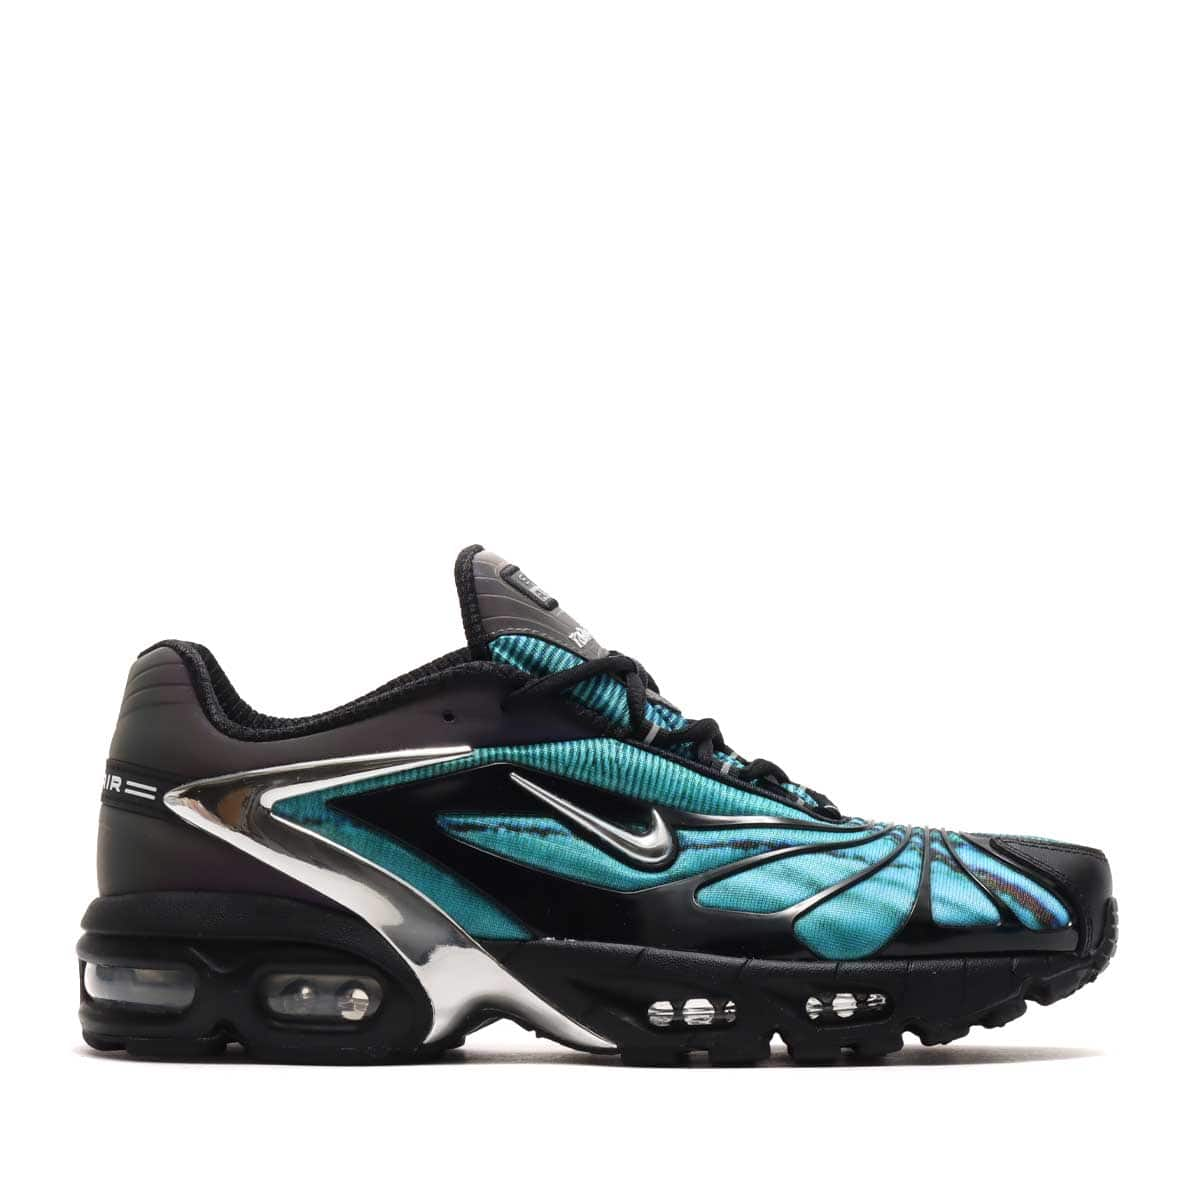 NIKE AIR MAX TAILWIND V / SKEPTA BLACK/CHROME 21SP-I